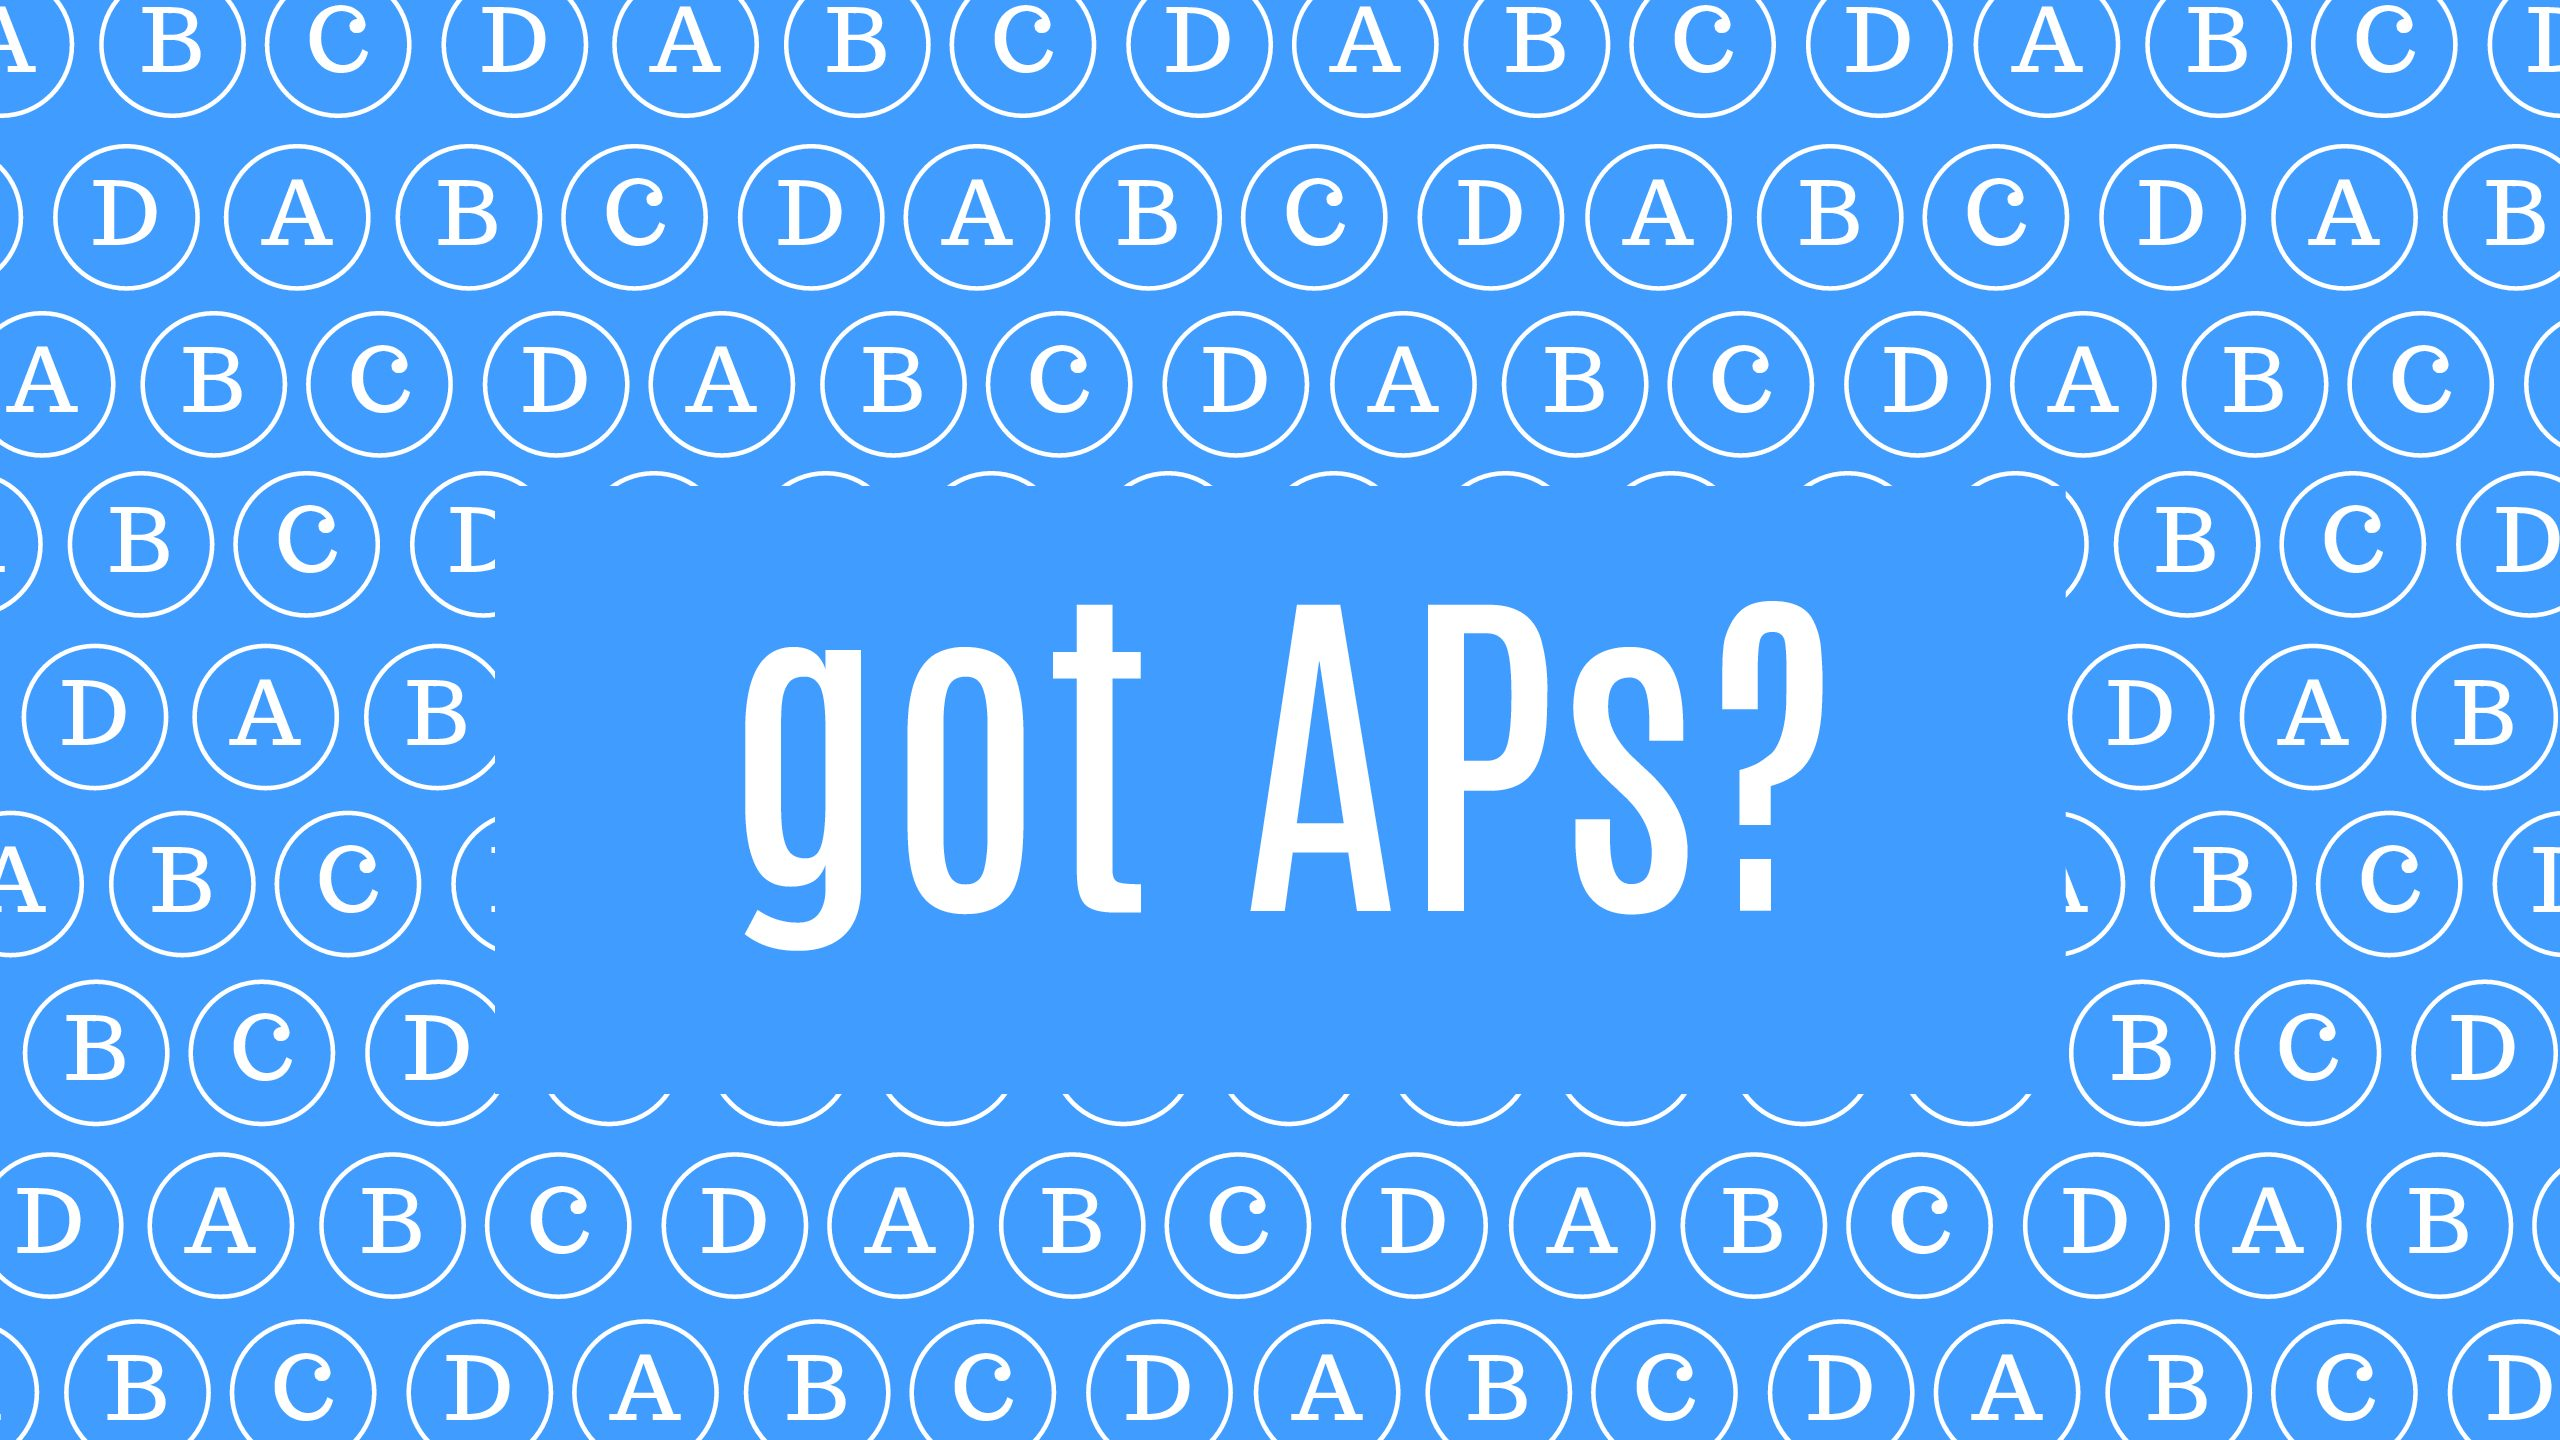 In order to make consistent AP preparation across the country, College Board has released AP Classroom in addition to updated course guides to better inform students and teachers on the new curriculum-based AP exams. Students enrolled in AP classes will be signing up for the test in the following months using Classroom.